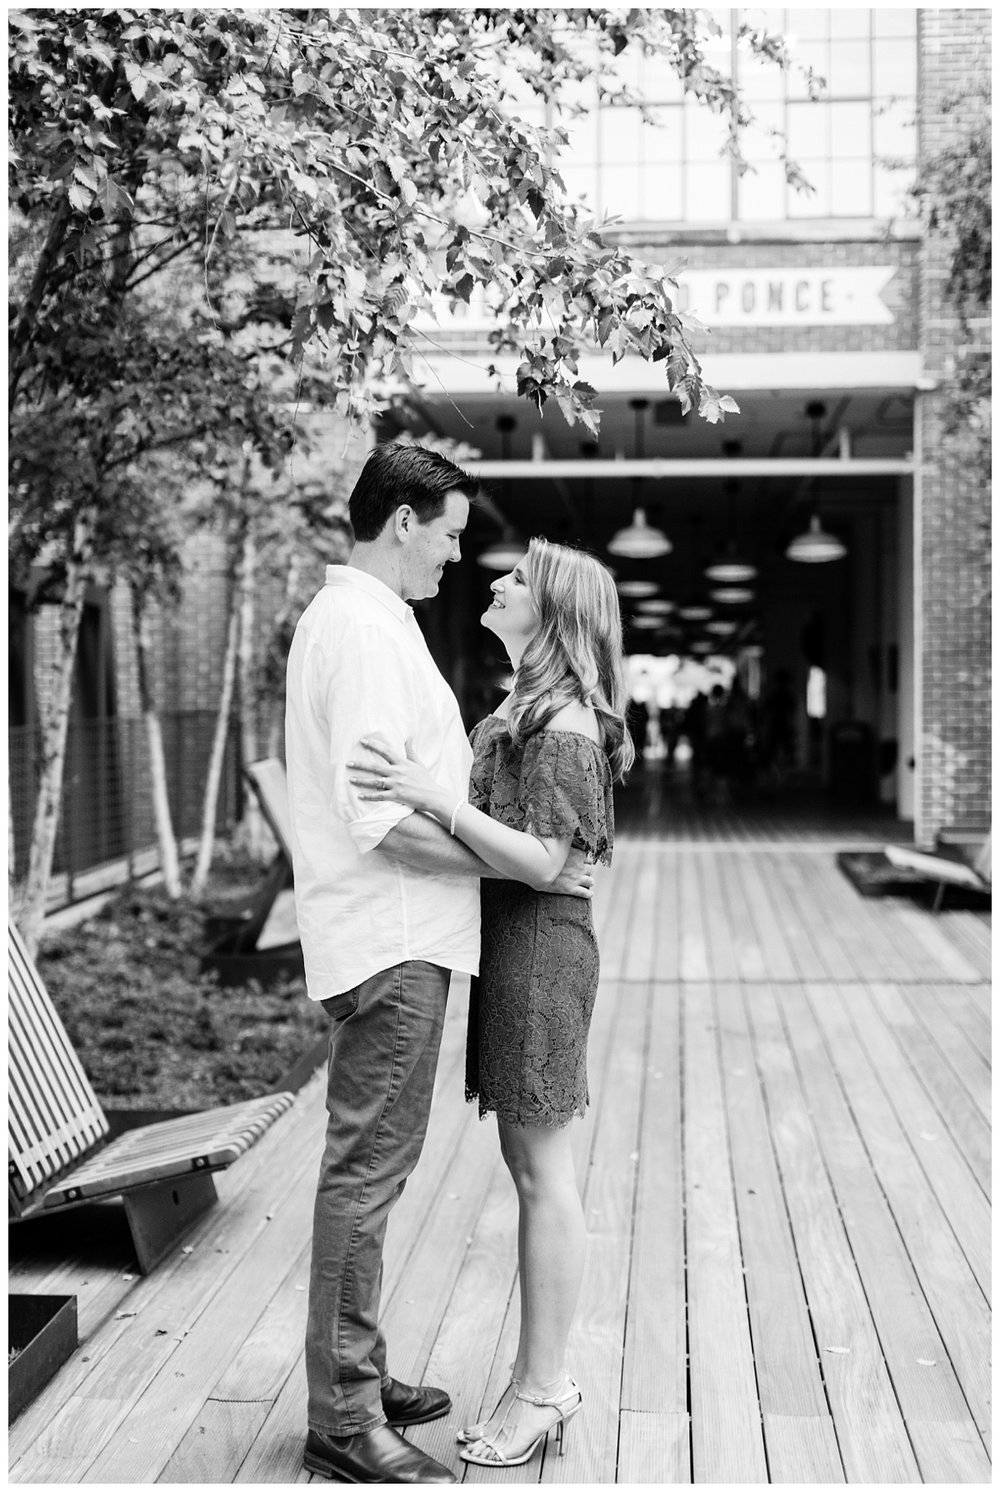 Engagement Pictures_KIm and Hamish_Abby Breaux Photography_Atlanta_Ponce City Market_Jackson Street Bridge_0047.jpg